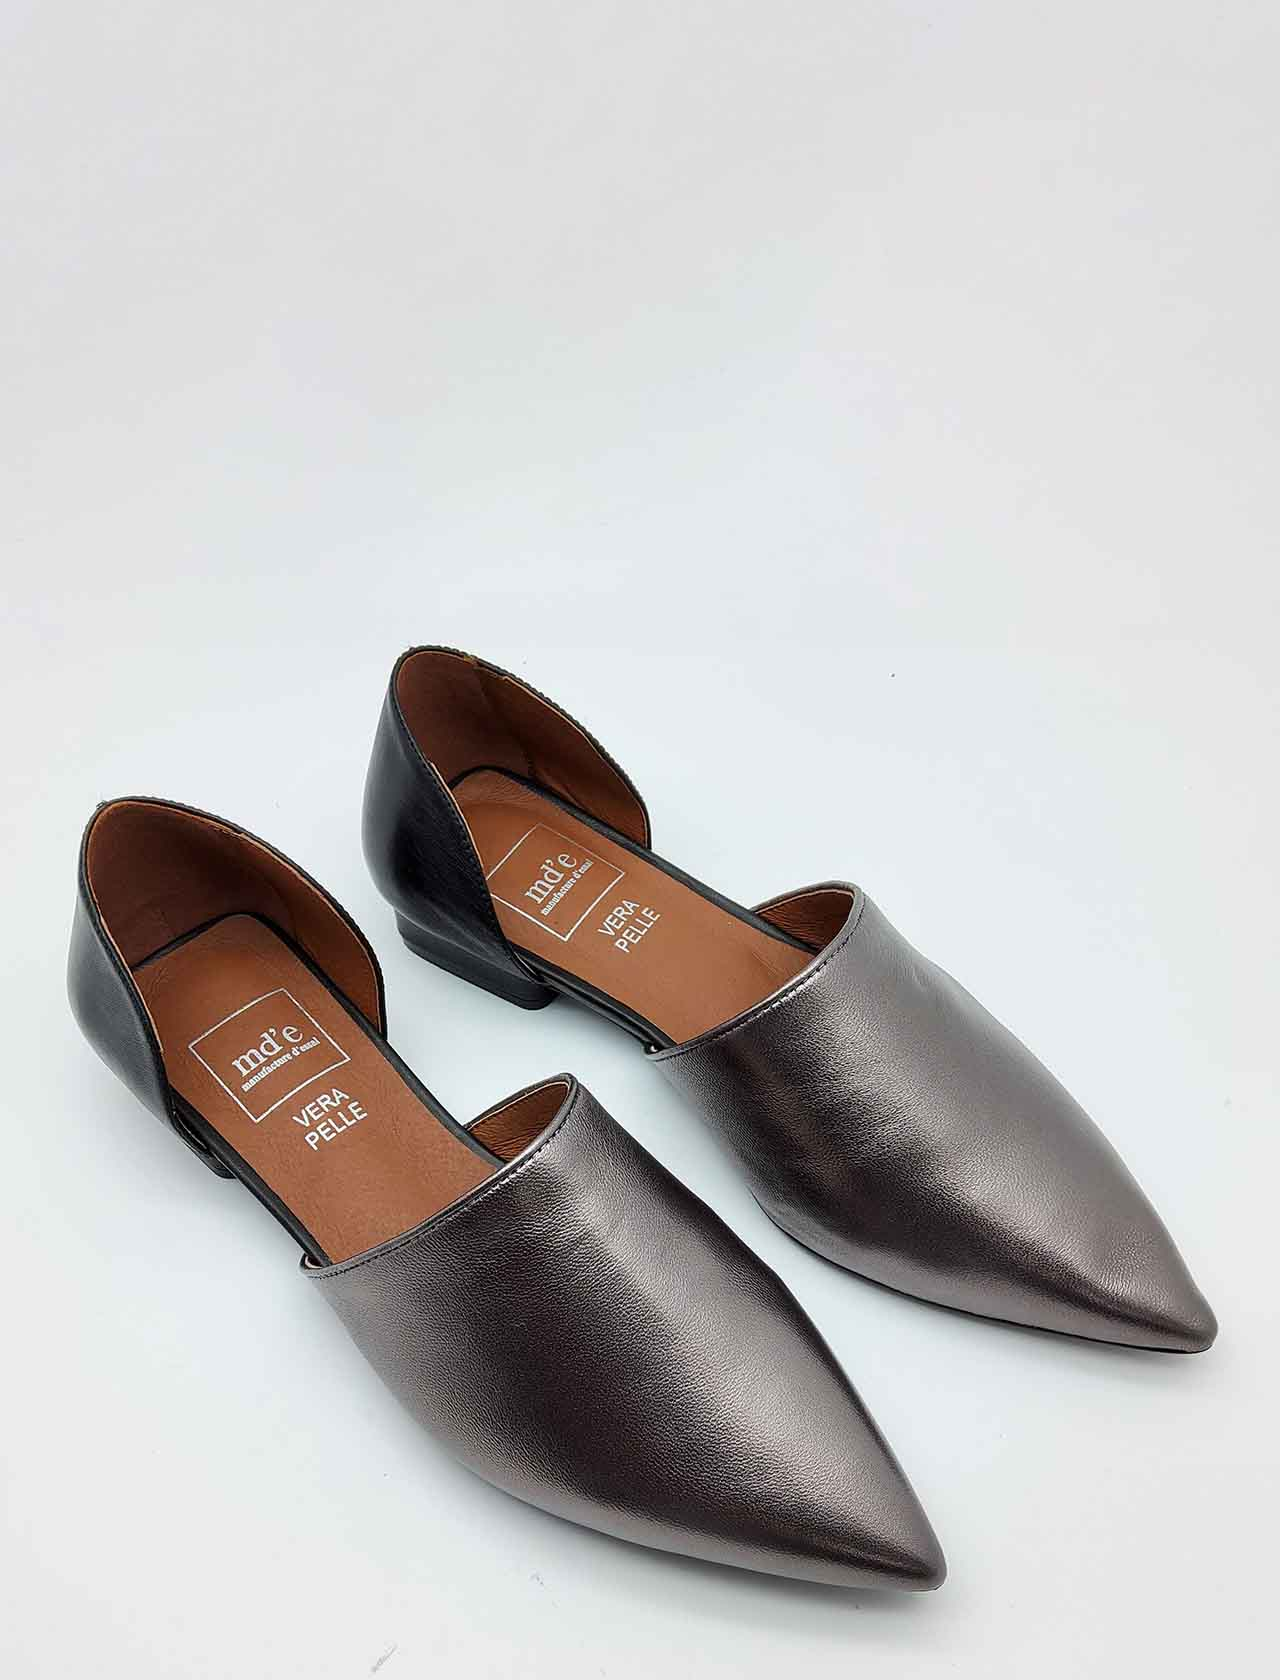 Women's Shoes Low Décolleté in Gunmetal and Black Leather with Pointed Toe Manufacture D'Essai | Pumps | E08605